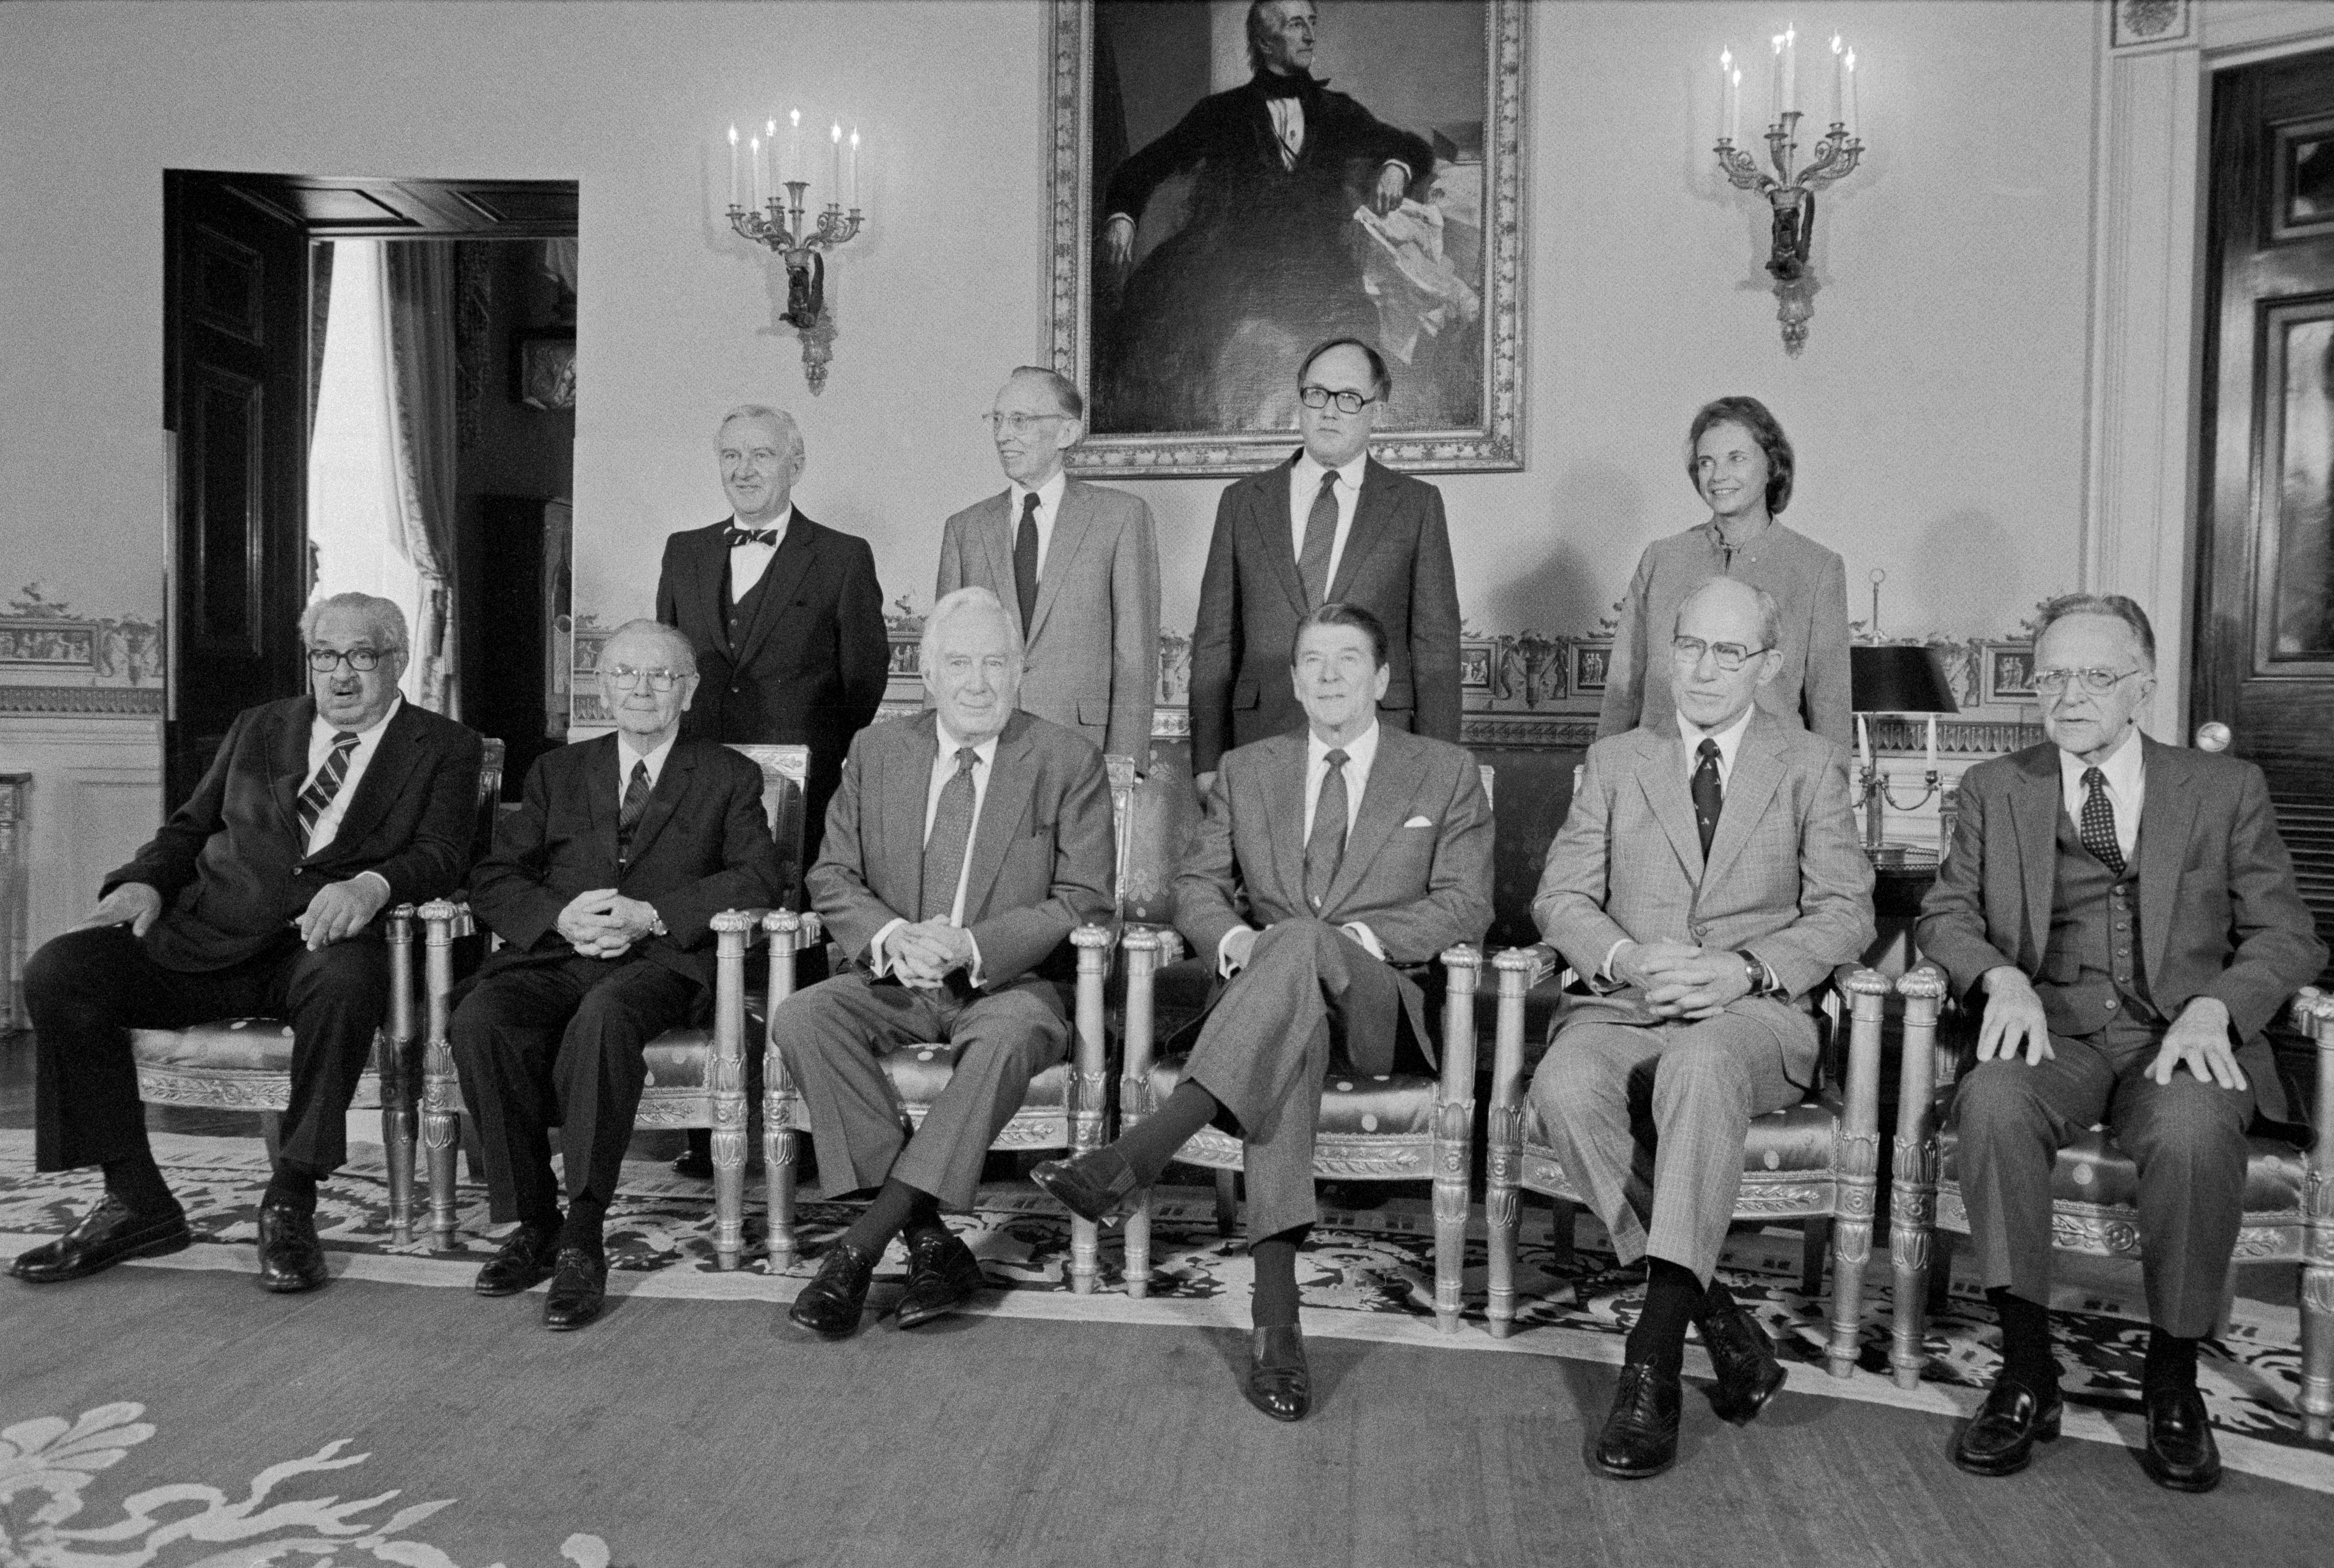 President Ronald Reagan with Supreme Court Justices